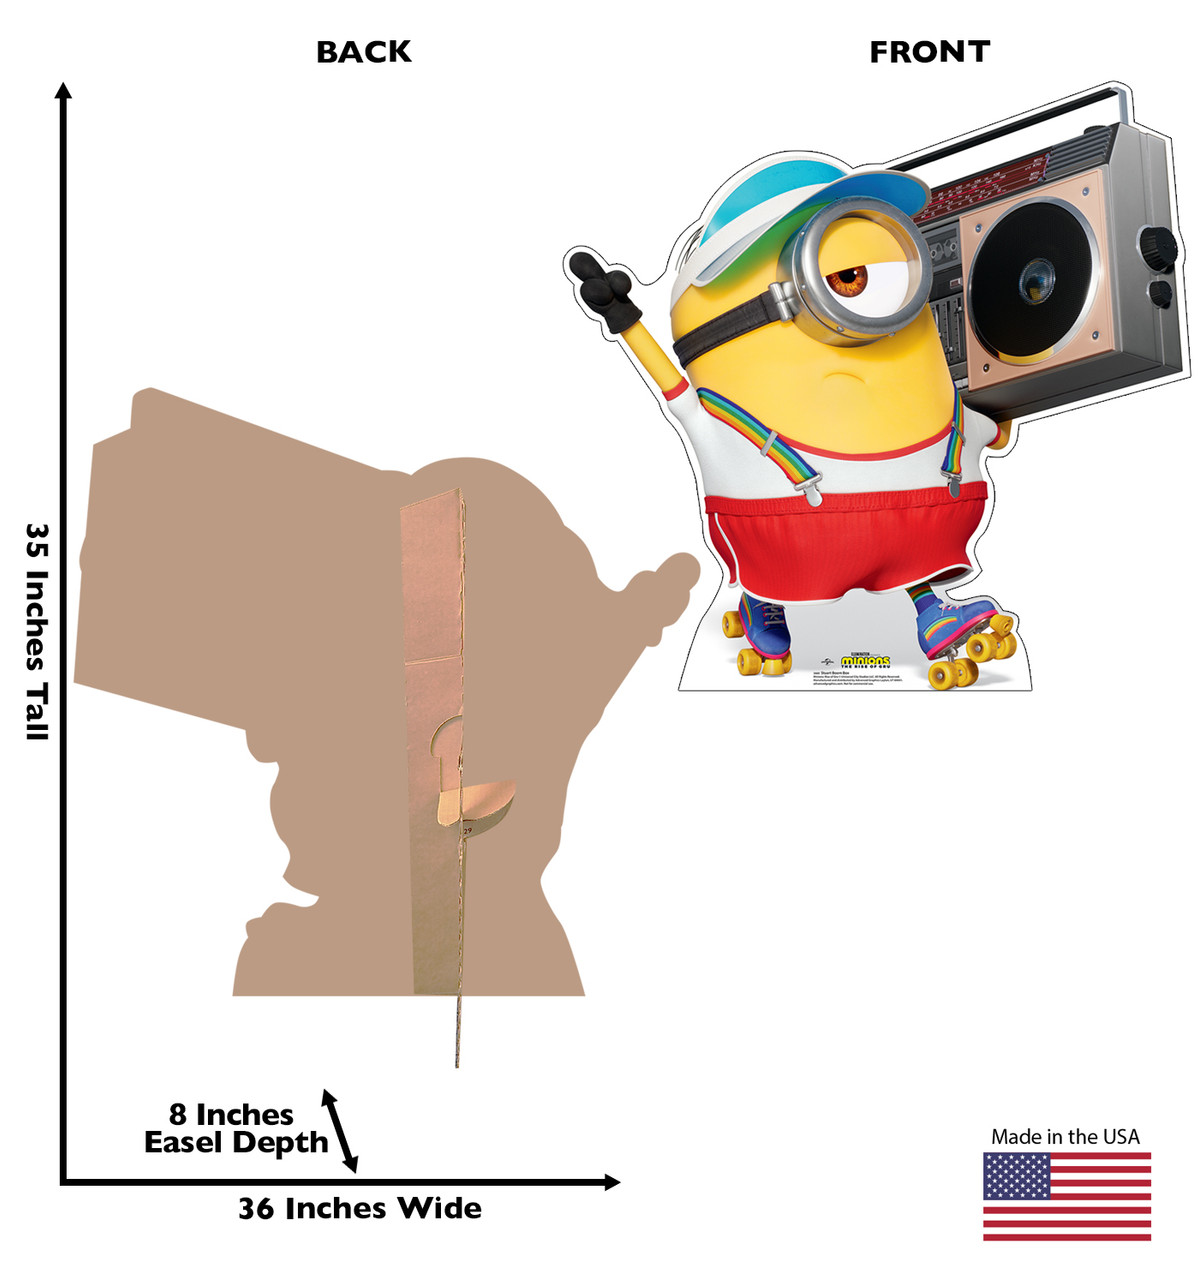 Life-size cardboard standee of Stuart Boom Box from the new movie Minions Rise of Gru with back and front dimensions.